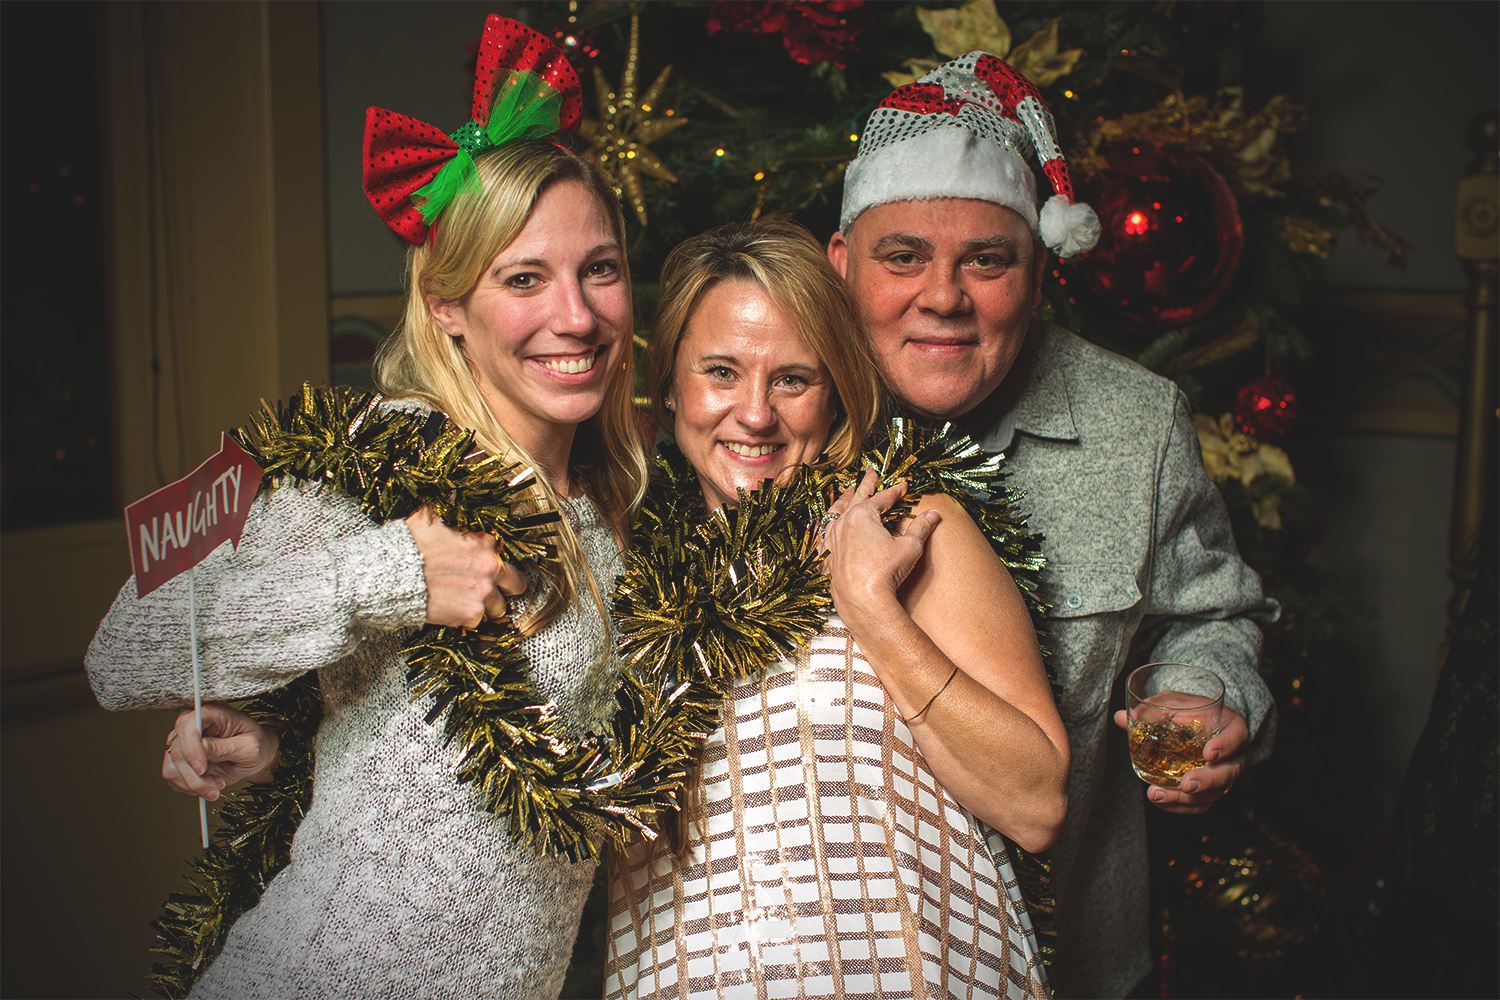 epproperties-vancouver-washington-xmas-party-photolga7.png